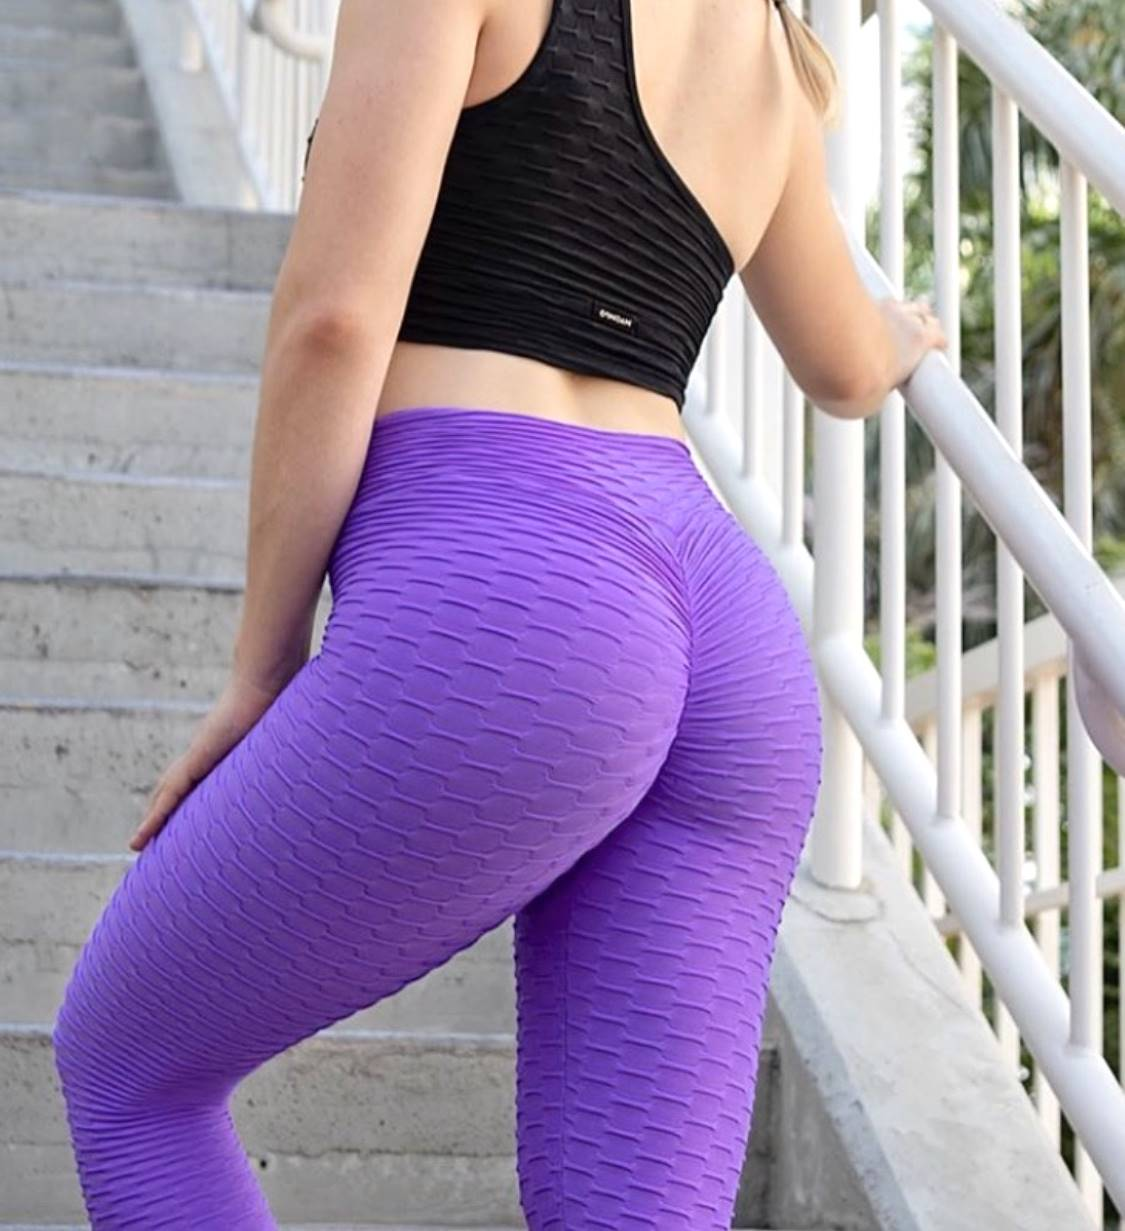 #1 Booty Lifting x Anti-Cellulite Leggings